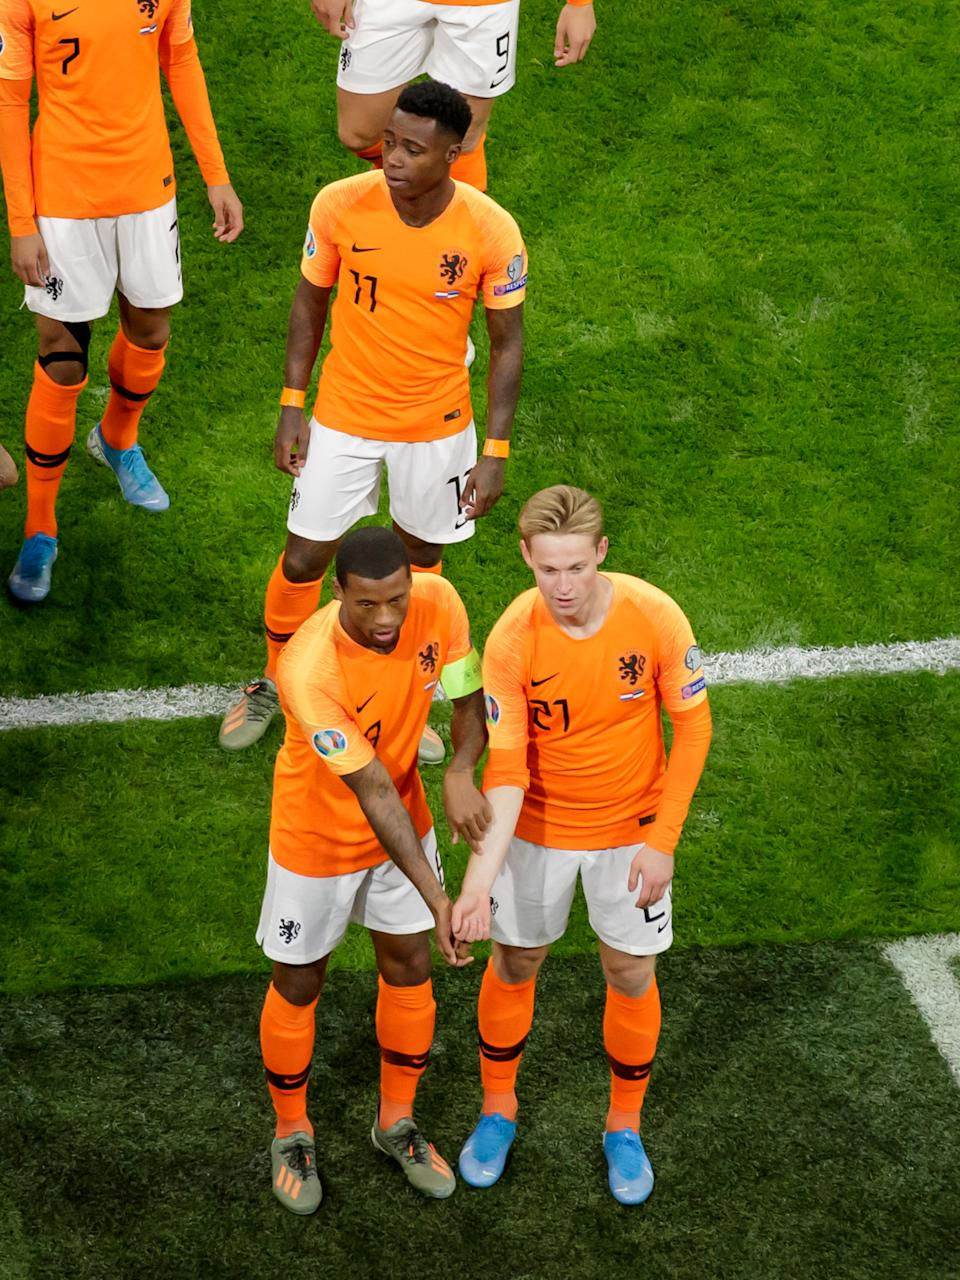 AMSTERDAM, NETHERLANDS - NOVEMBER 19: Georginio Wijnaldum of Holland celebrates 1-0 with Frenkie de Jong of Holland  during the  EURO Qualifier match between Holland  v Estonia  at the Johan Cruijff Arena on November 19, 2019 in Amsterdam Netherlands (Photo by Rico Brouwer/Soccrates/Getty Images)